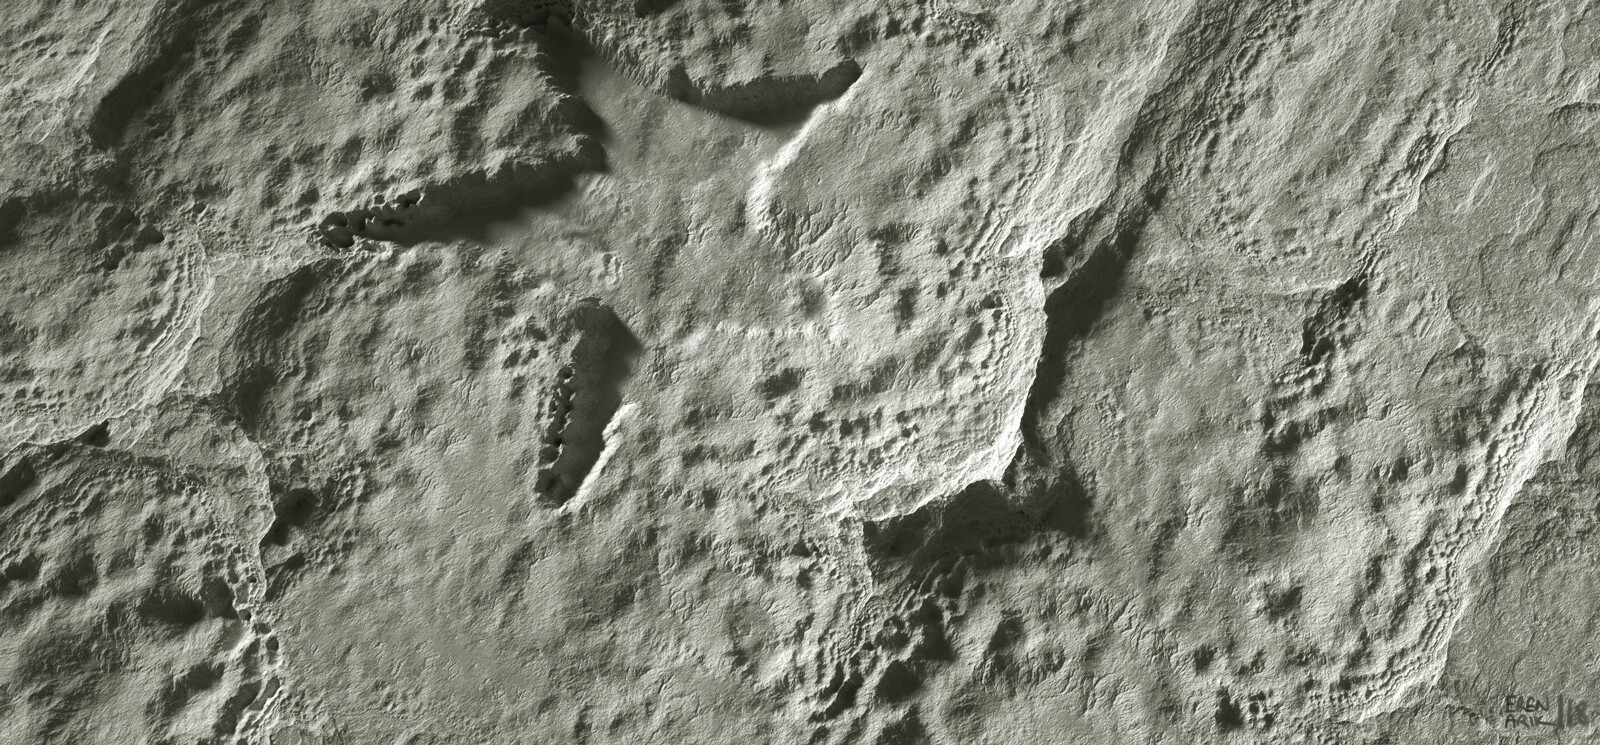 Star crater